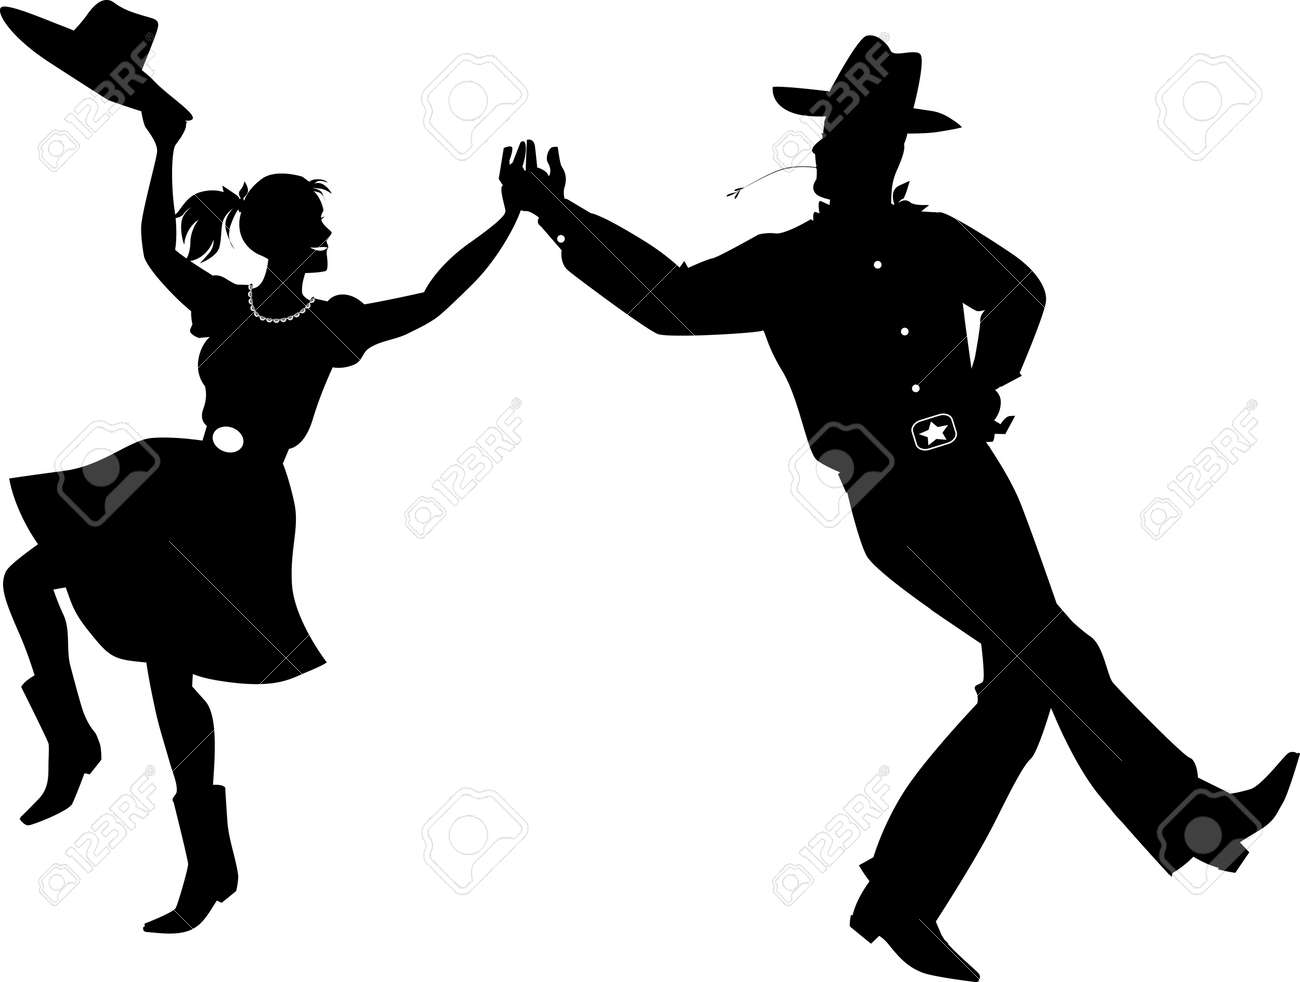 A couple dressed in traditional country western costumes dancing, EPS 8 vector silhouette illustration - 108579922